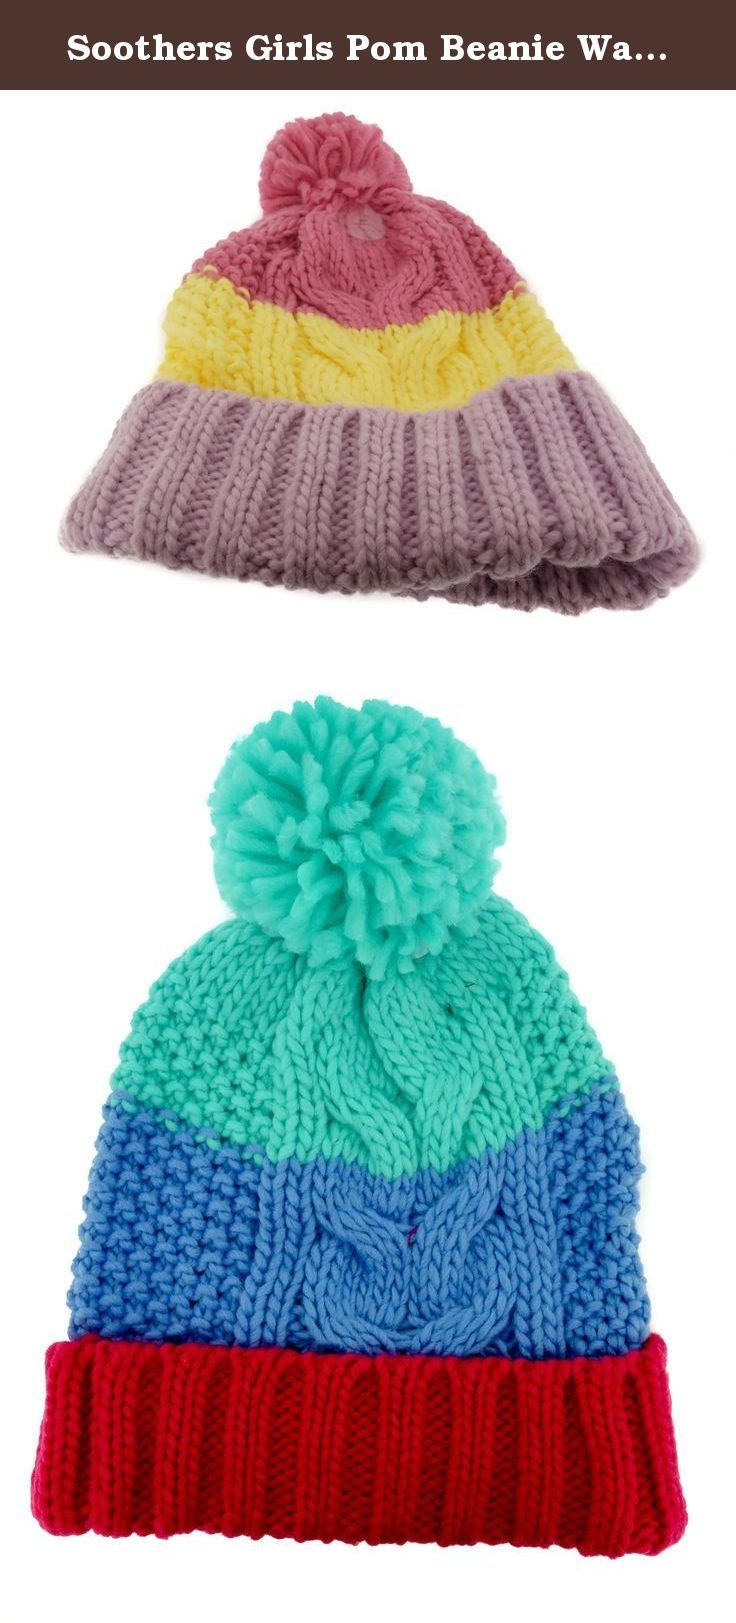 0fd223259b7 Soothers Girls Pom Beanie Warm Ribbed Knit Hat - Red Green. Vibrant colors  with the power of the Pom Pom!